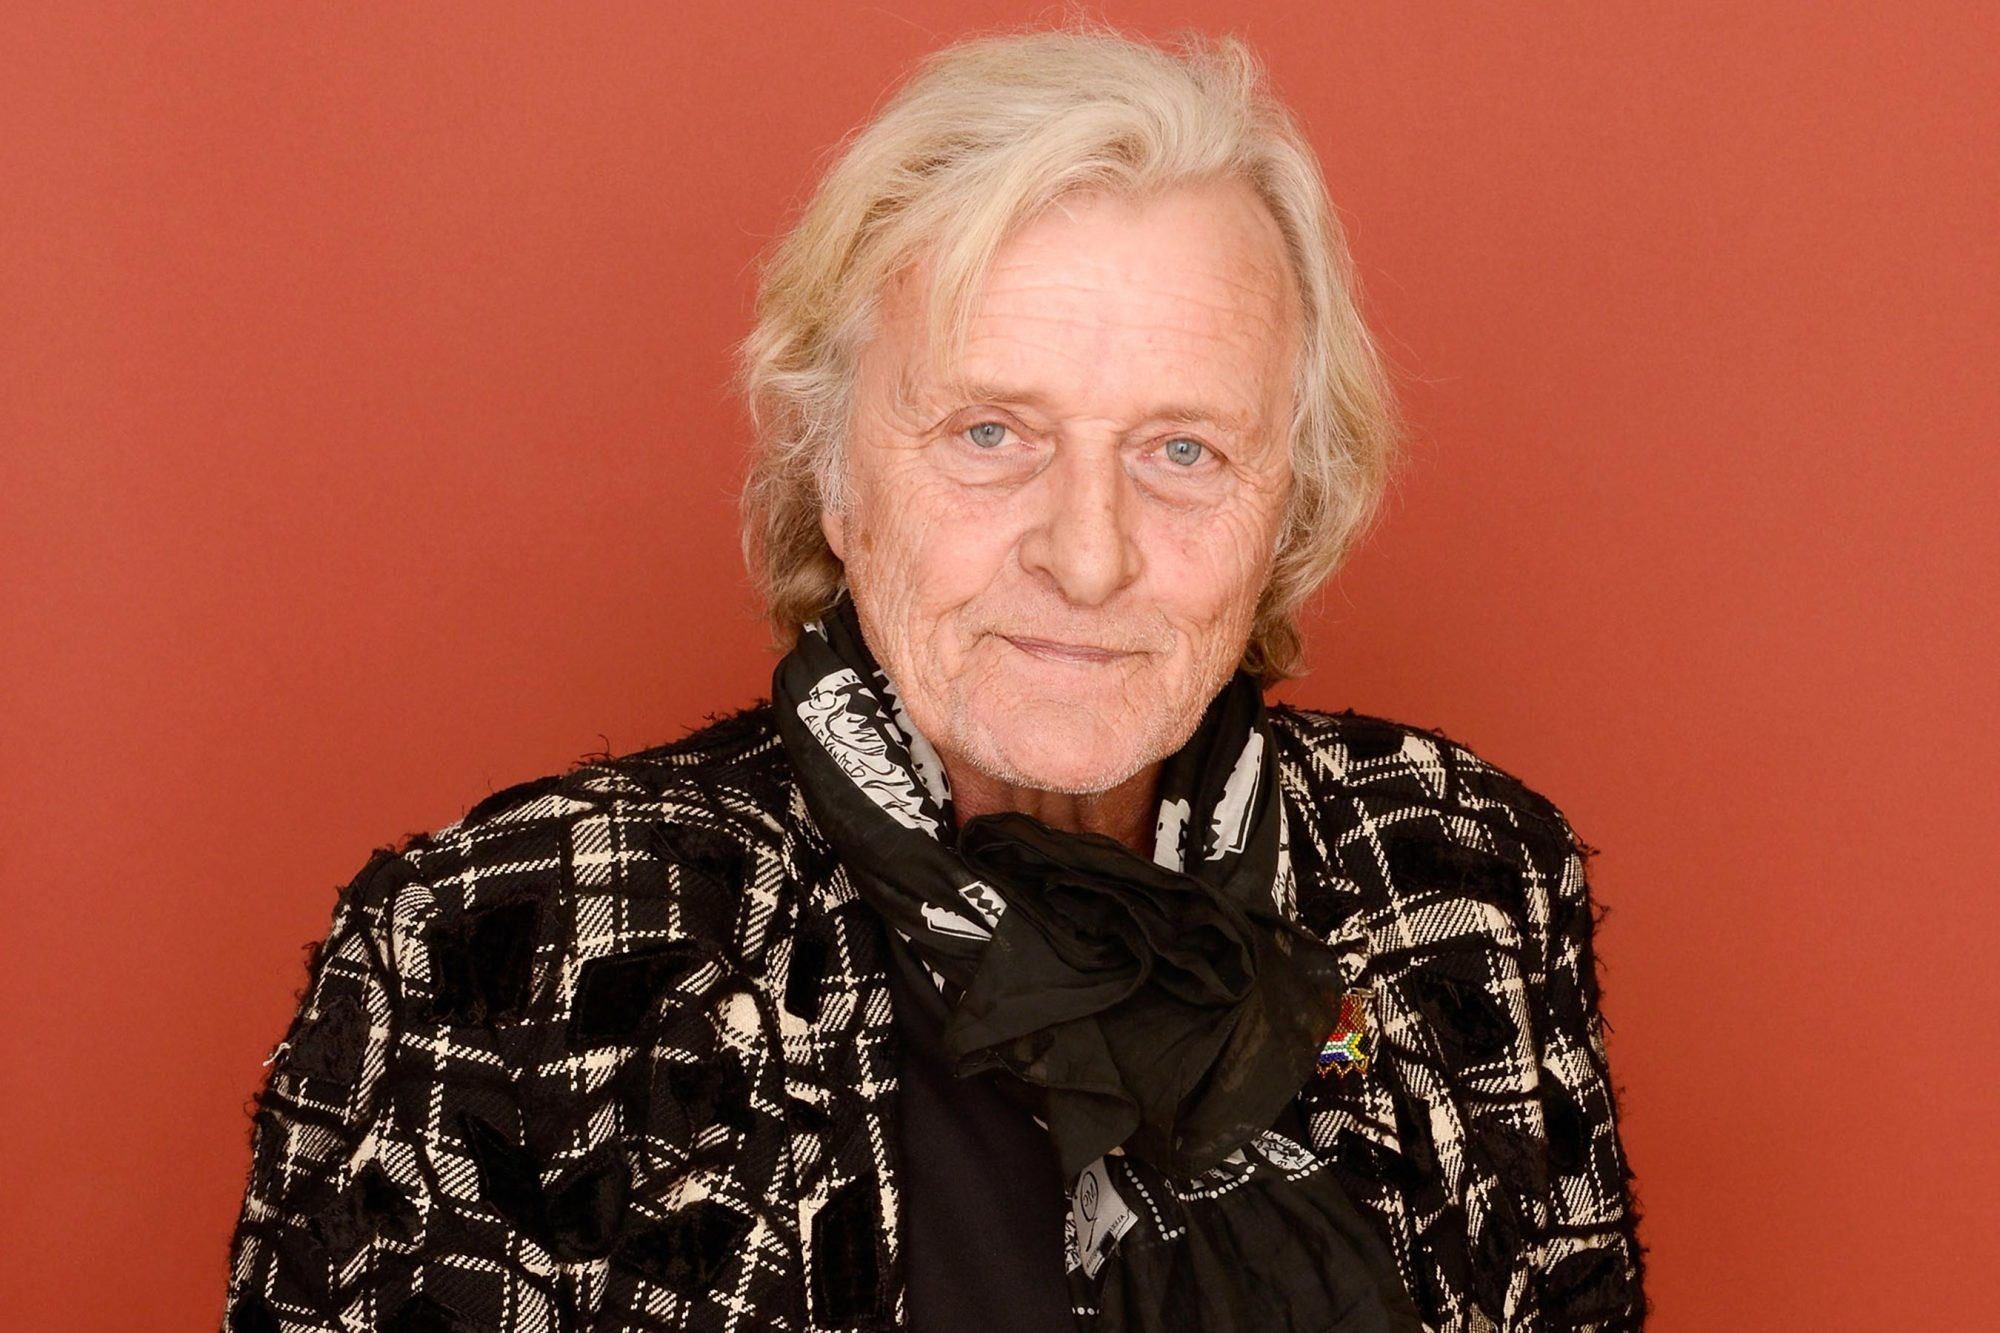 Actor Rutger Hauer poses for a portrait during the 2013 Sundance Film Festival at the Getty Images Portrait Studio at Village at the Lift on January 19, 2013 in Park City, Utah. (Photo by Larry Busacca/Getty Images)